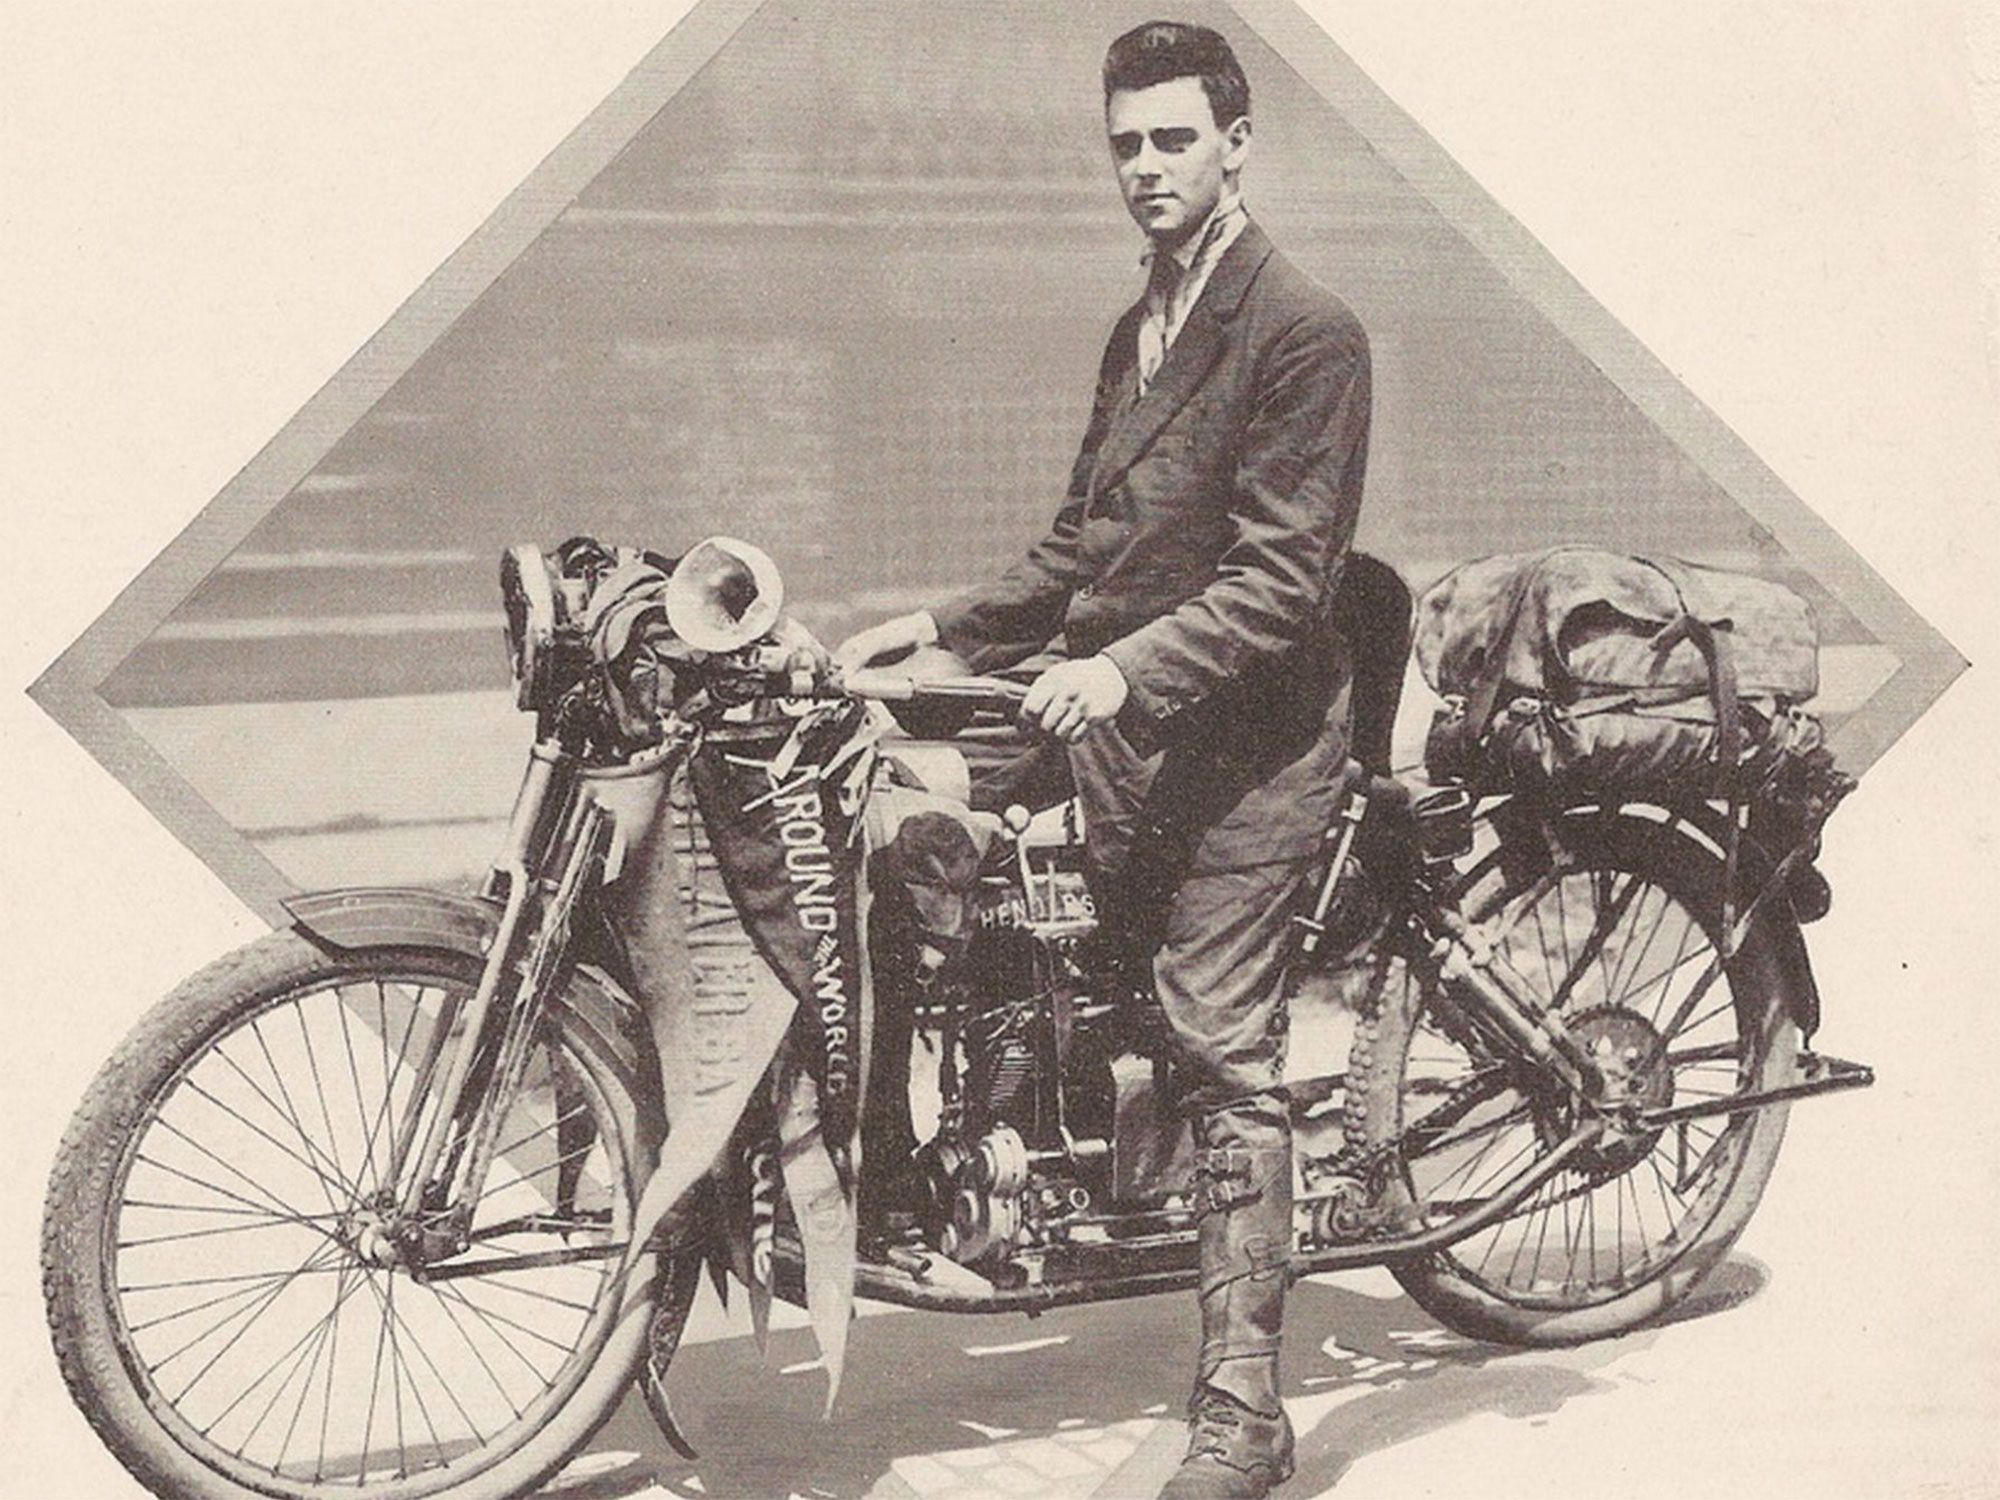 A man of style: Henderson reliability let Carl Stearns Clancy ride around the world in 1912.